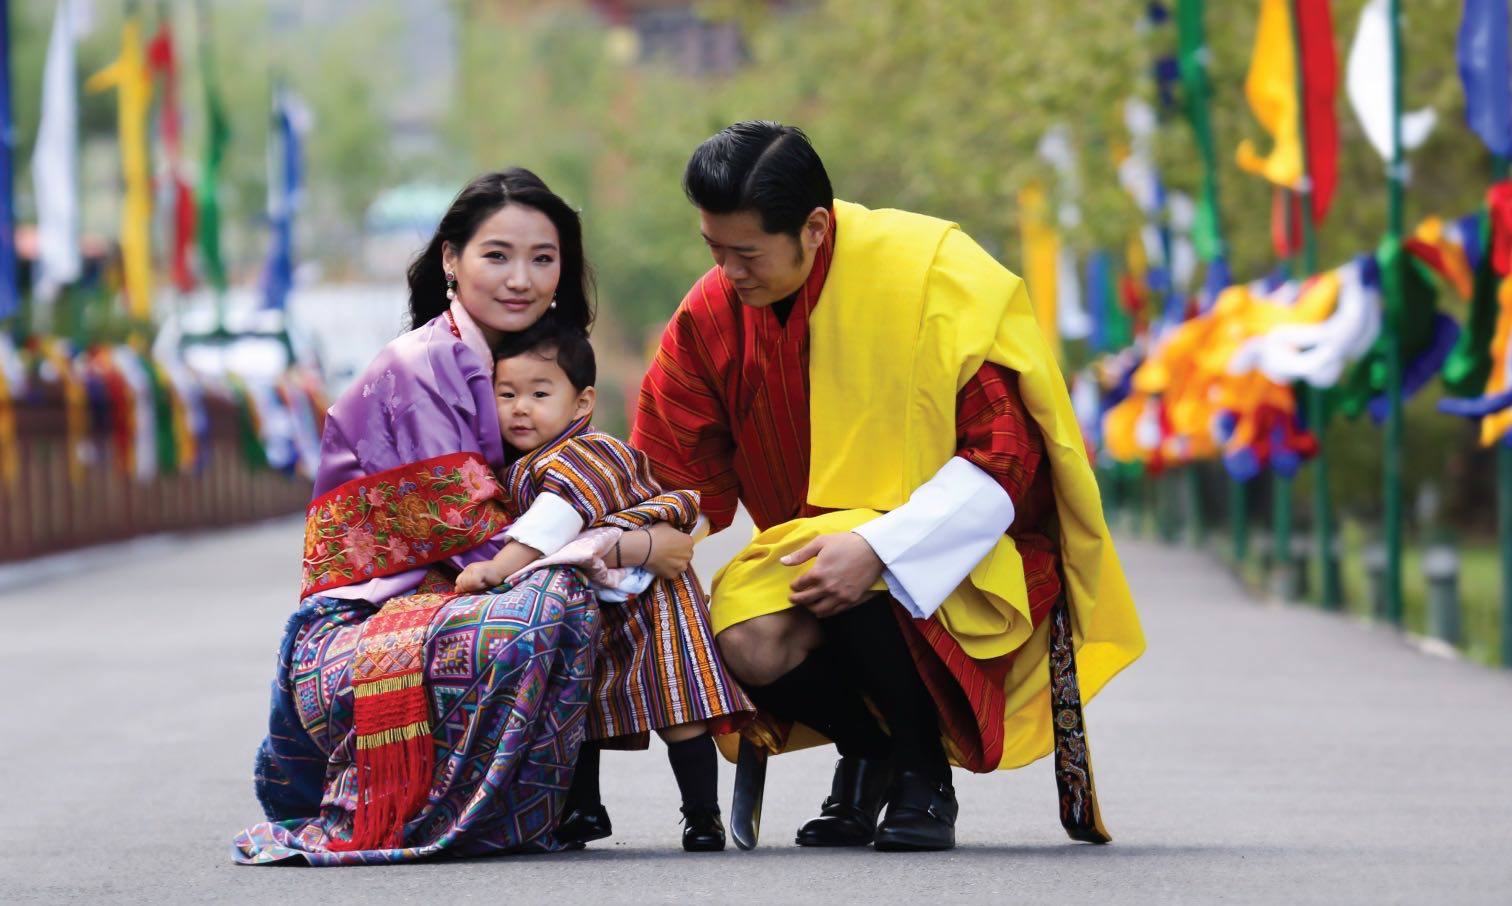 The Royal family of Bhutan